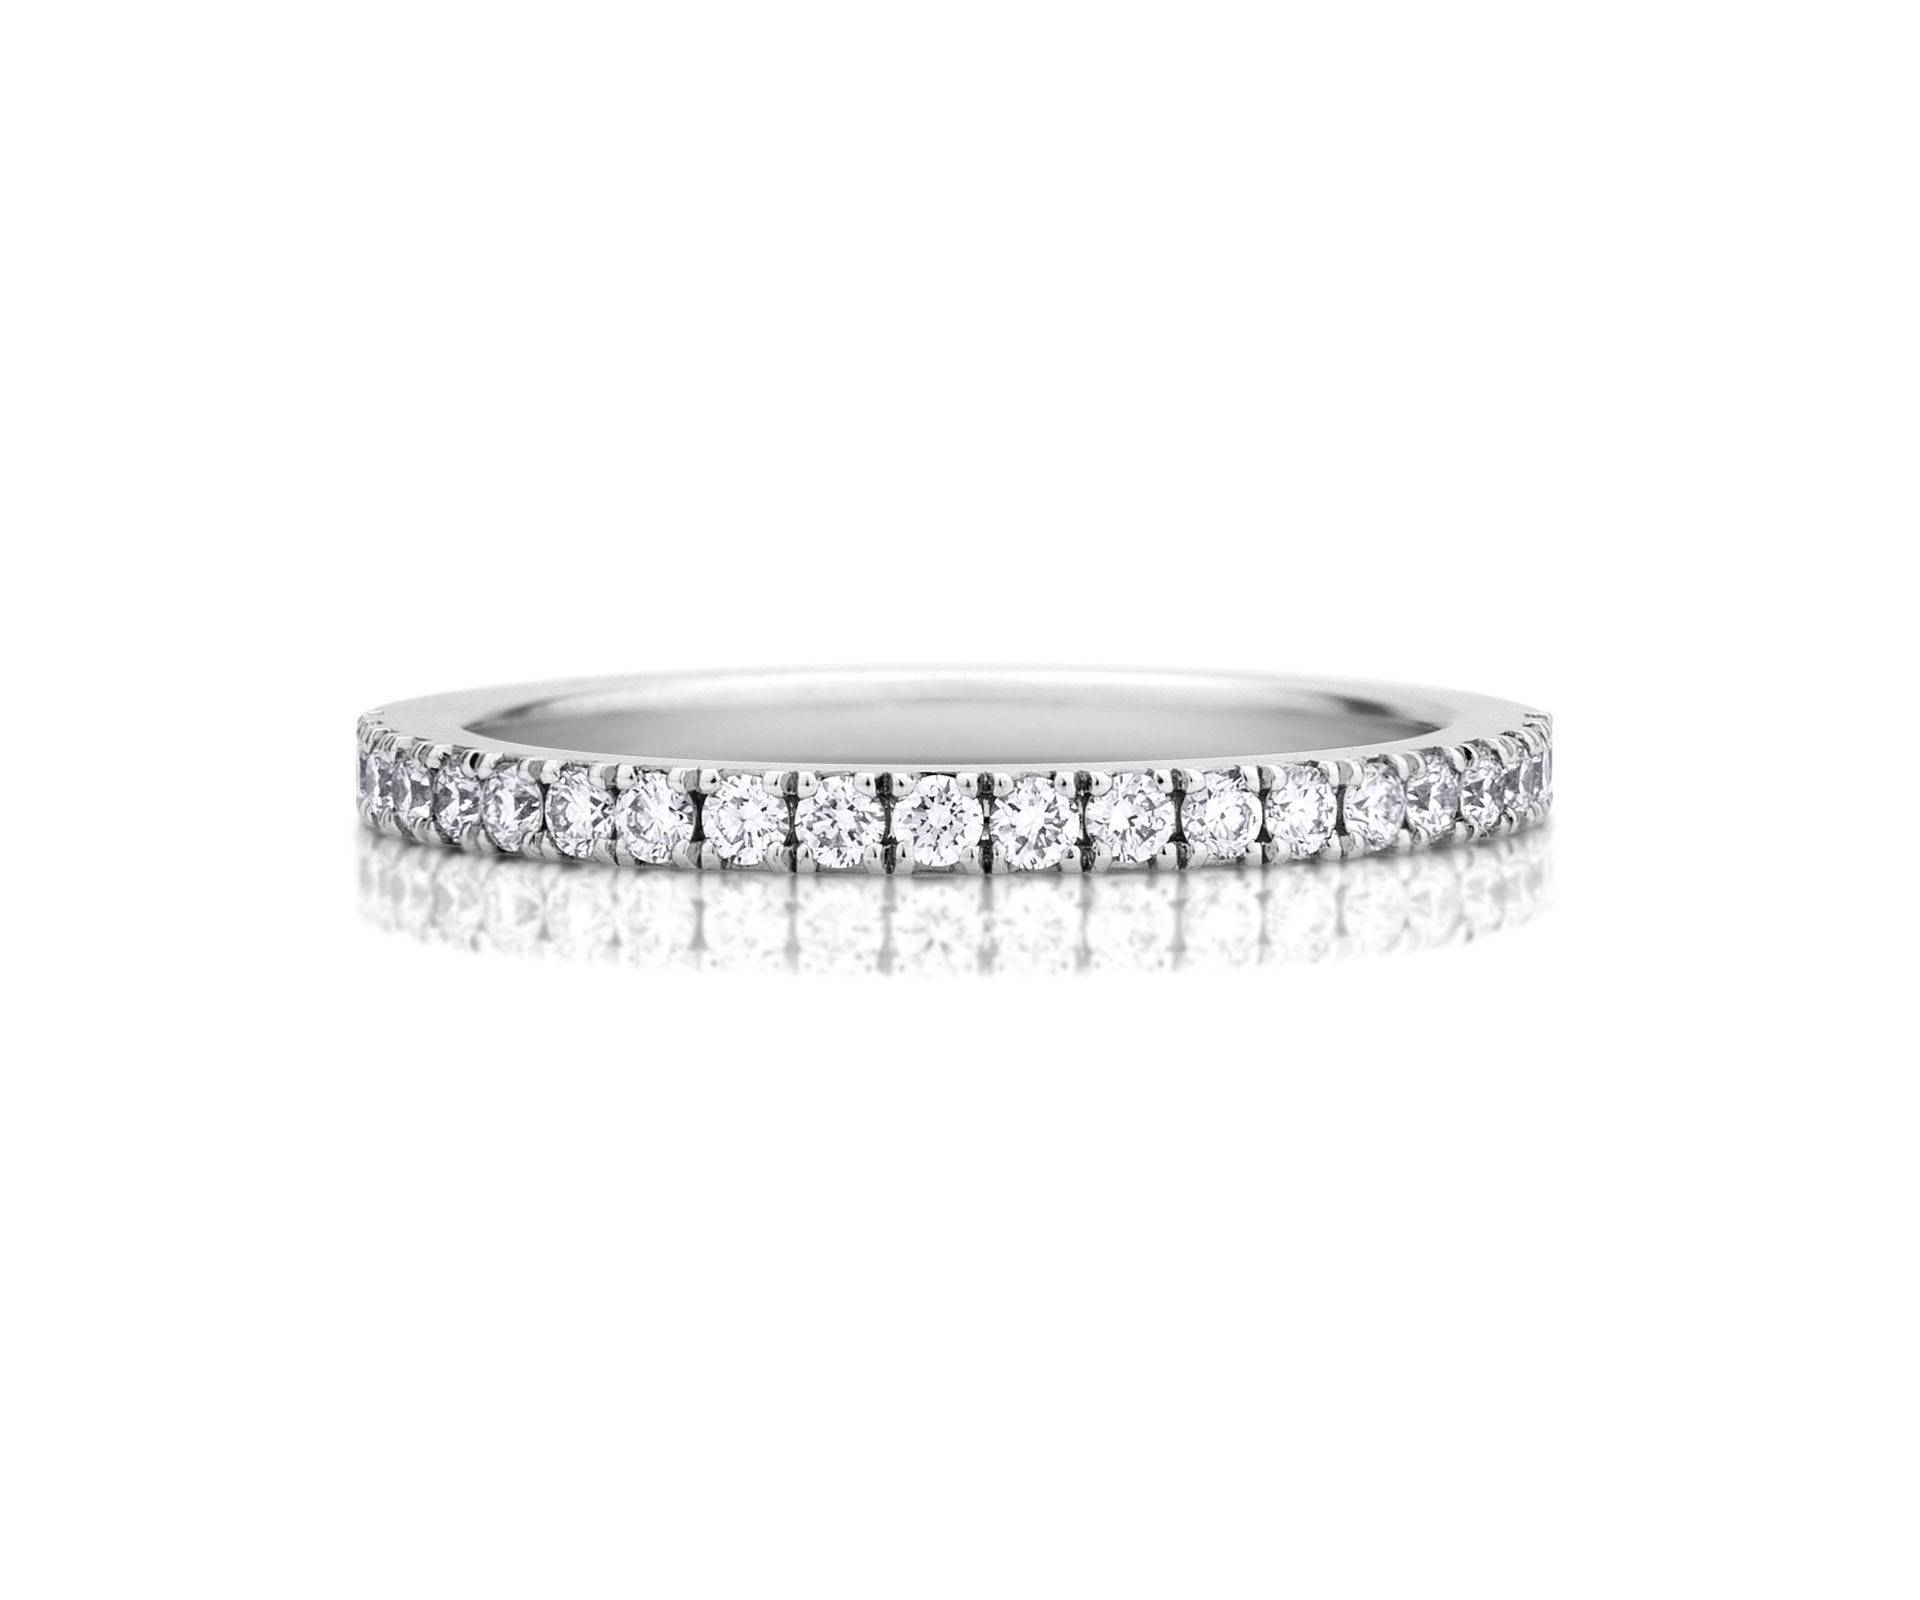 Wedding Bands | Bridal Pertaining To Wedding Rings With Diamond Band (View 13 of 15)